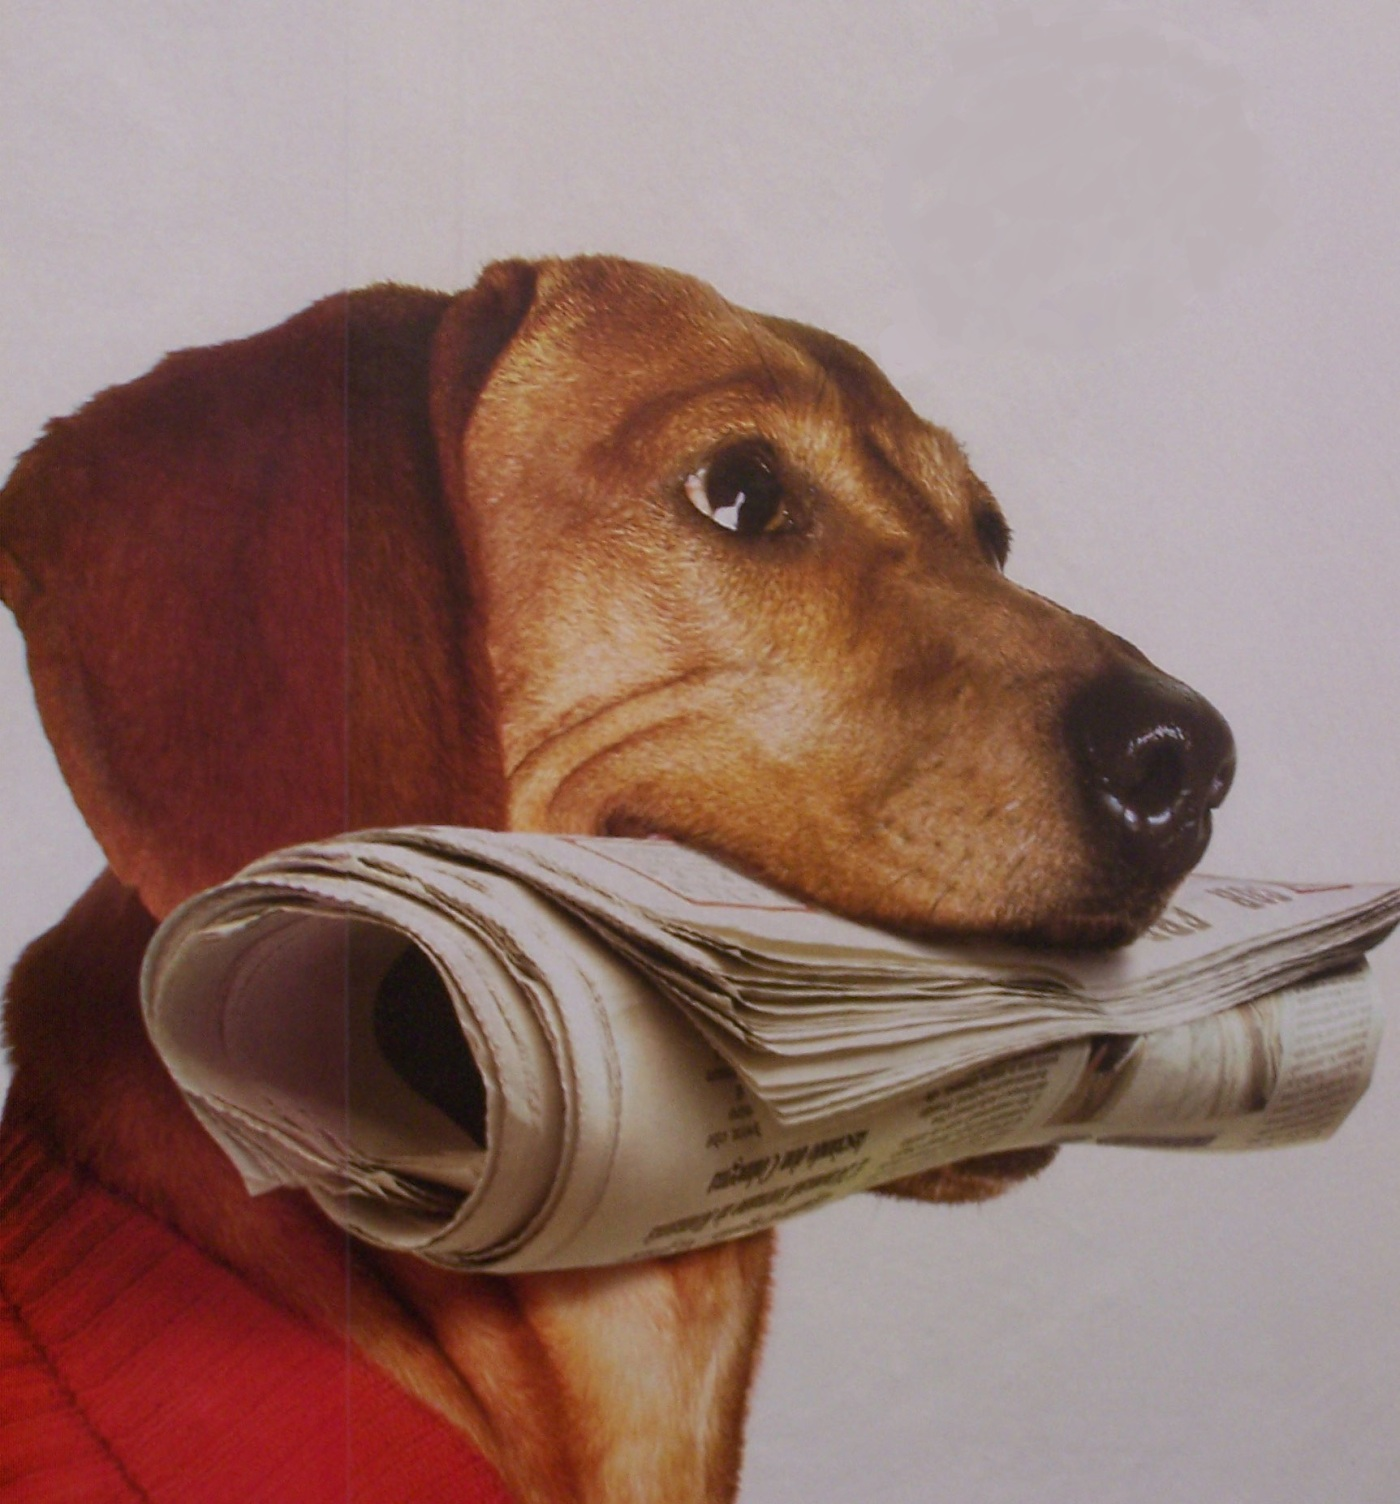 Picture of a dog holding a newspaper in its mouth